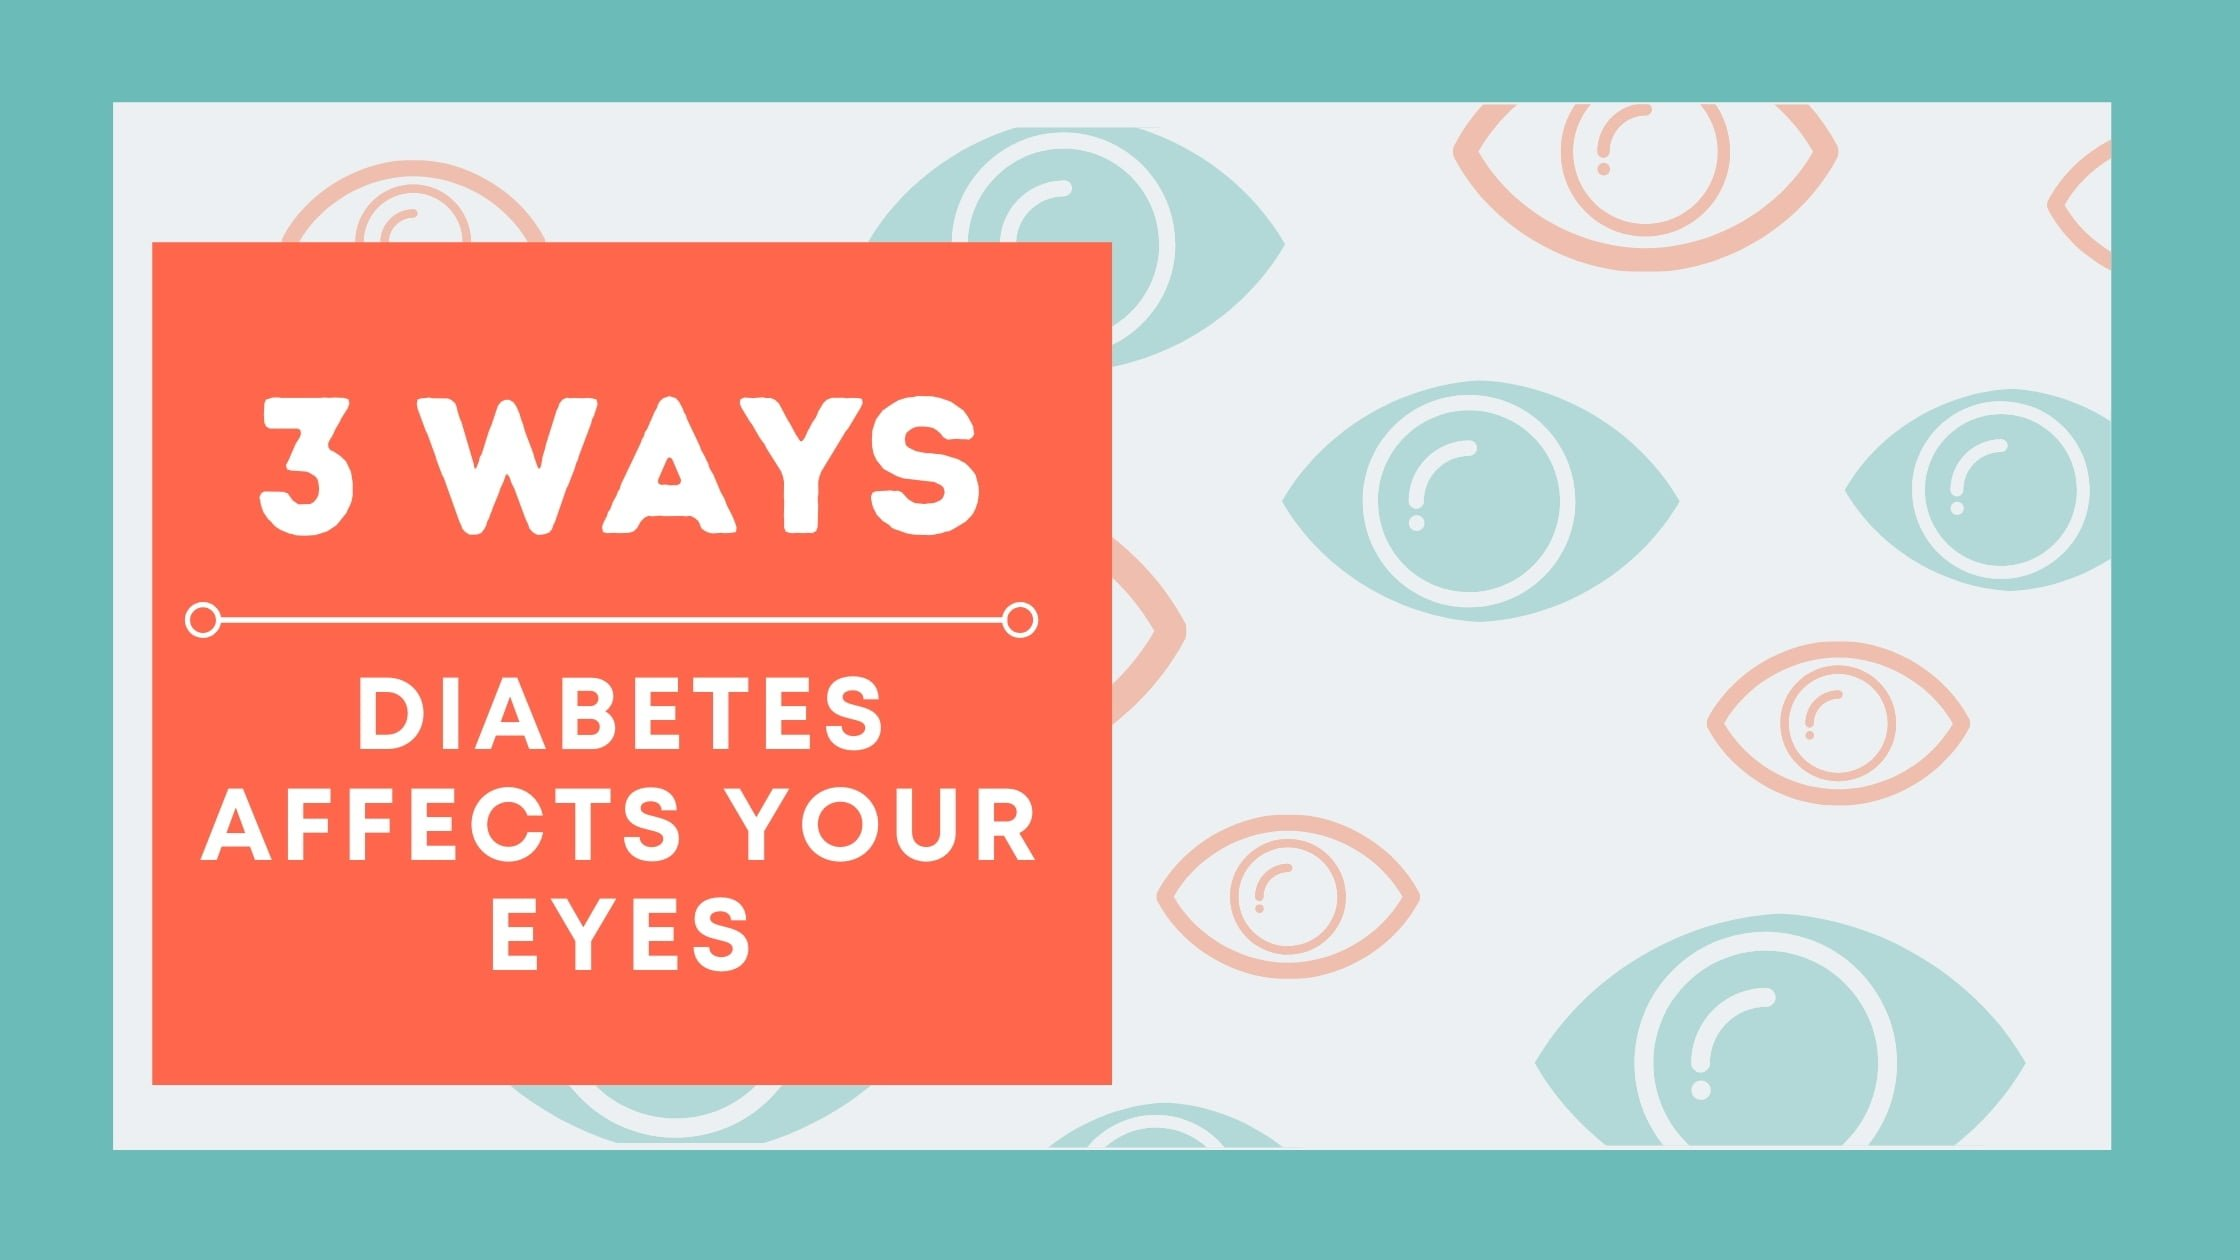 3 Ways Diabetes Affects Your Eyes